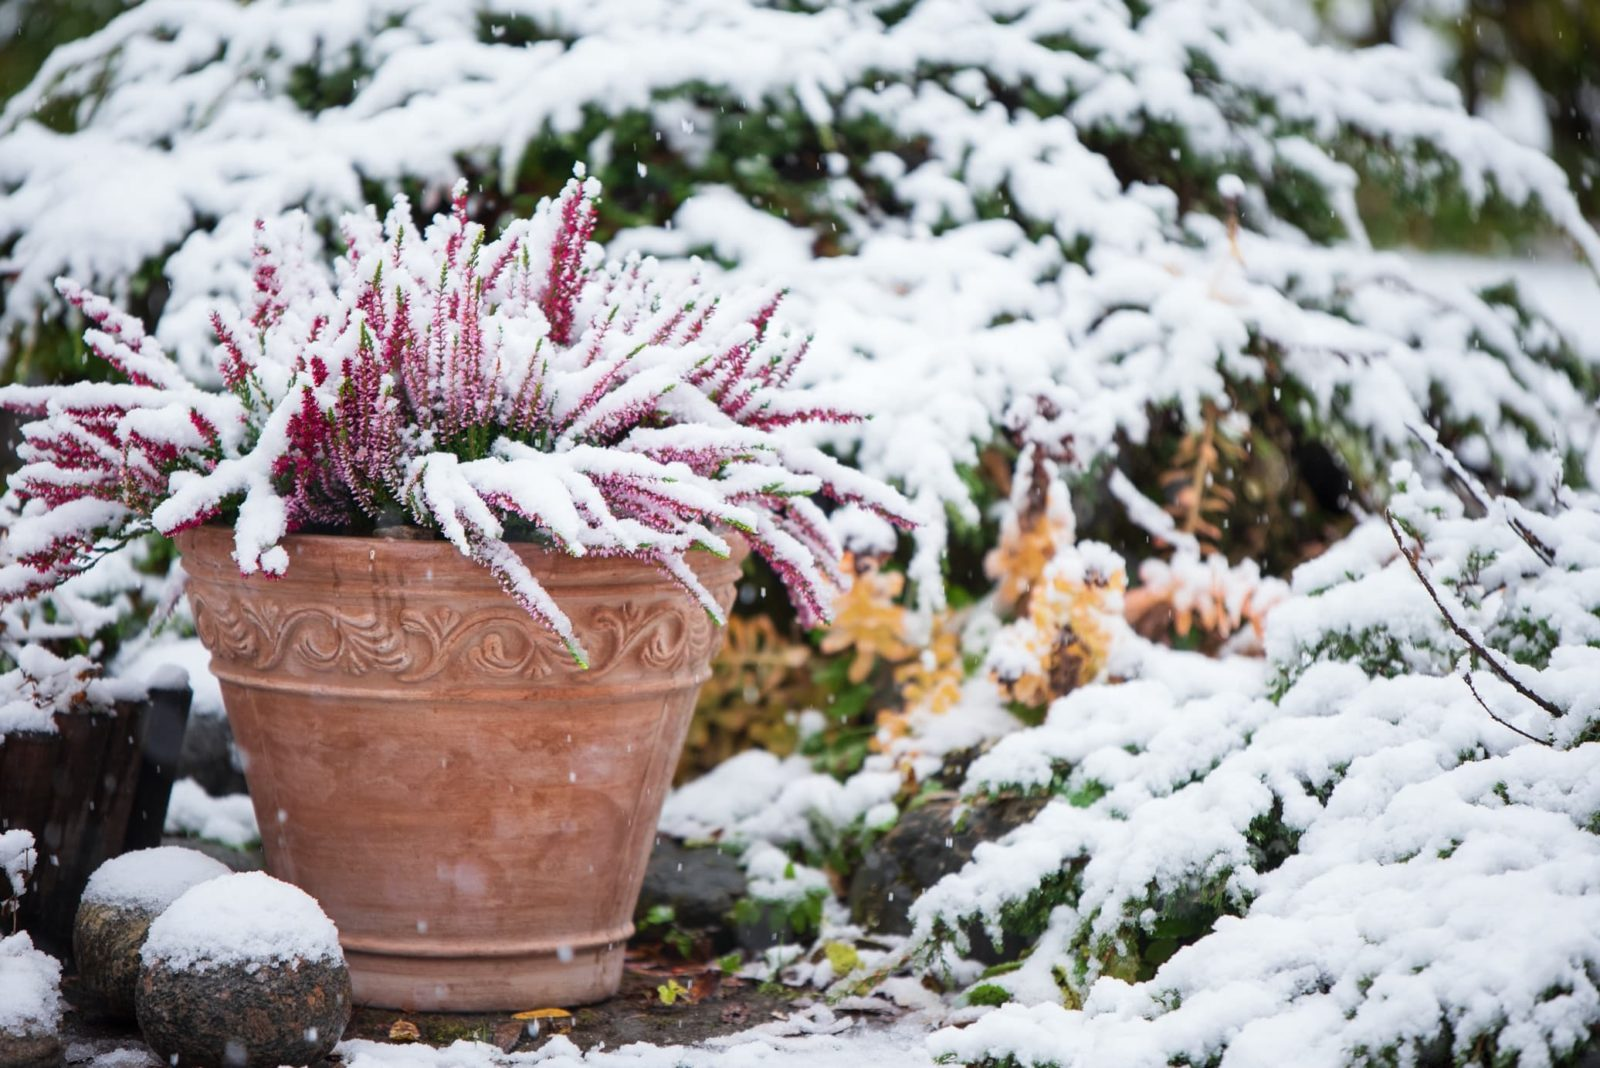 common heather in a terracotta planter sat outside in the snow